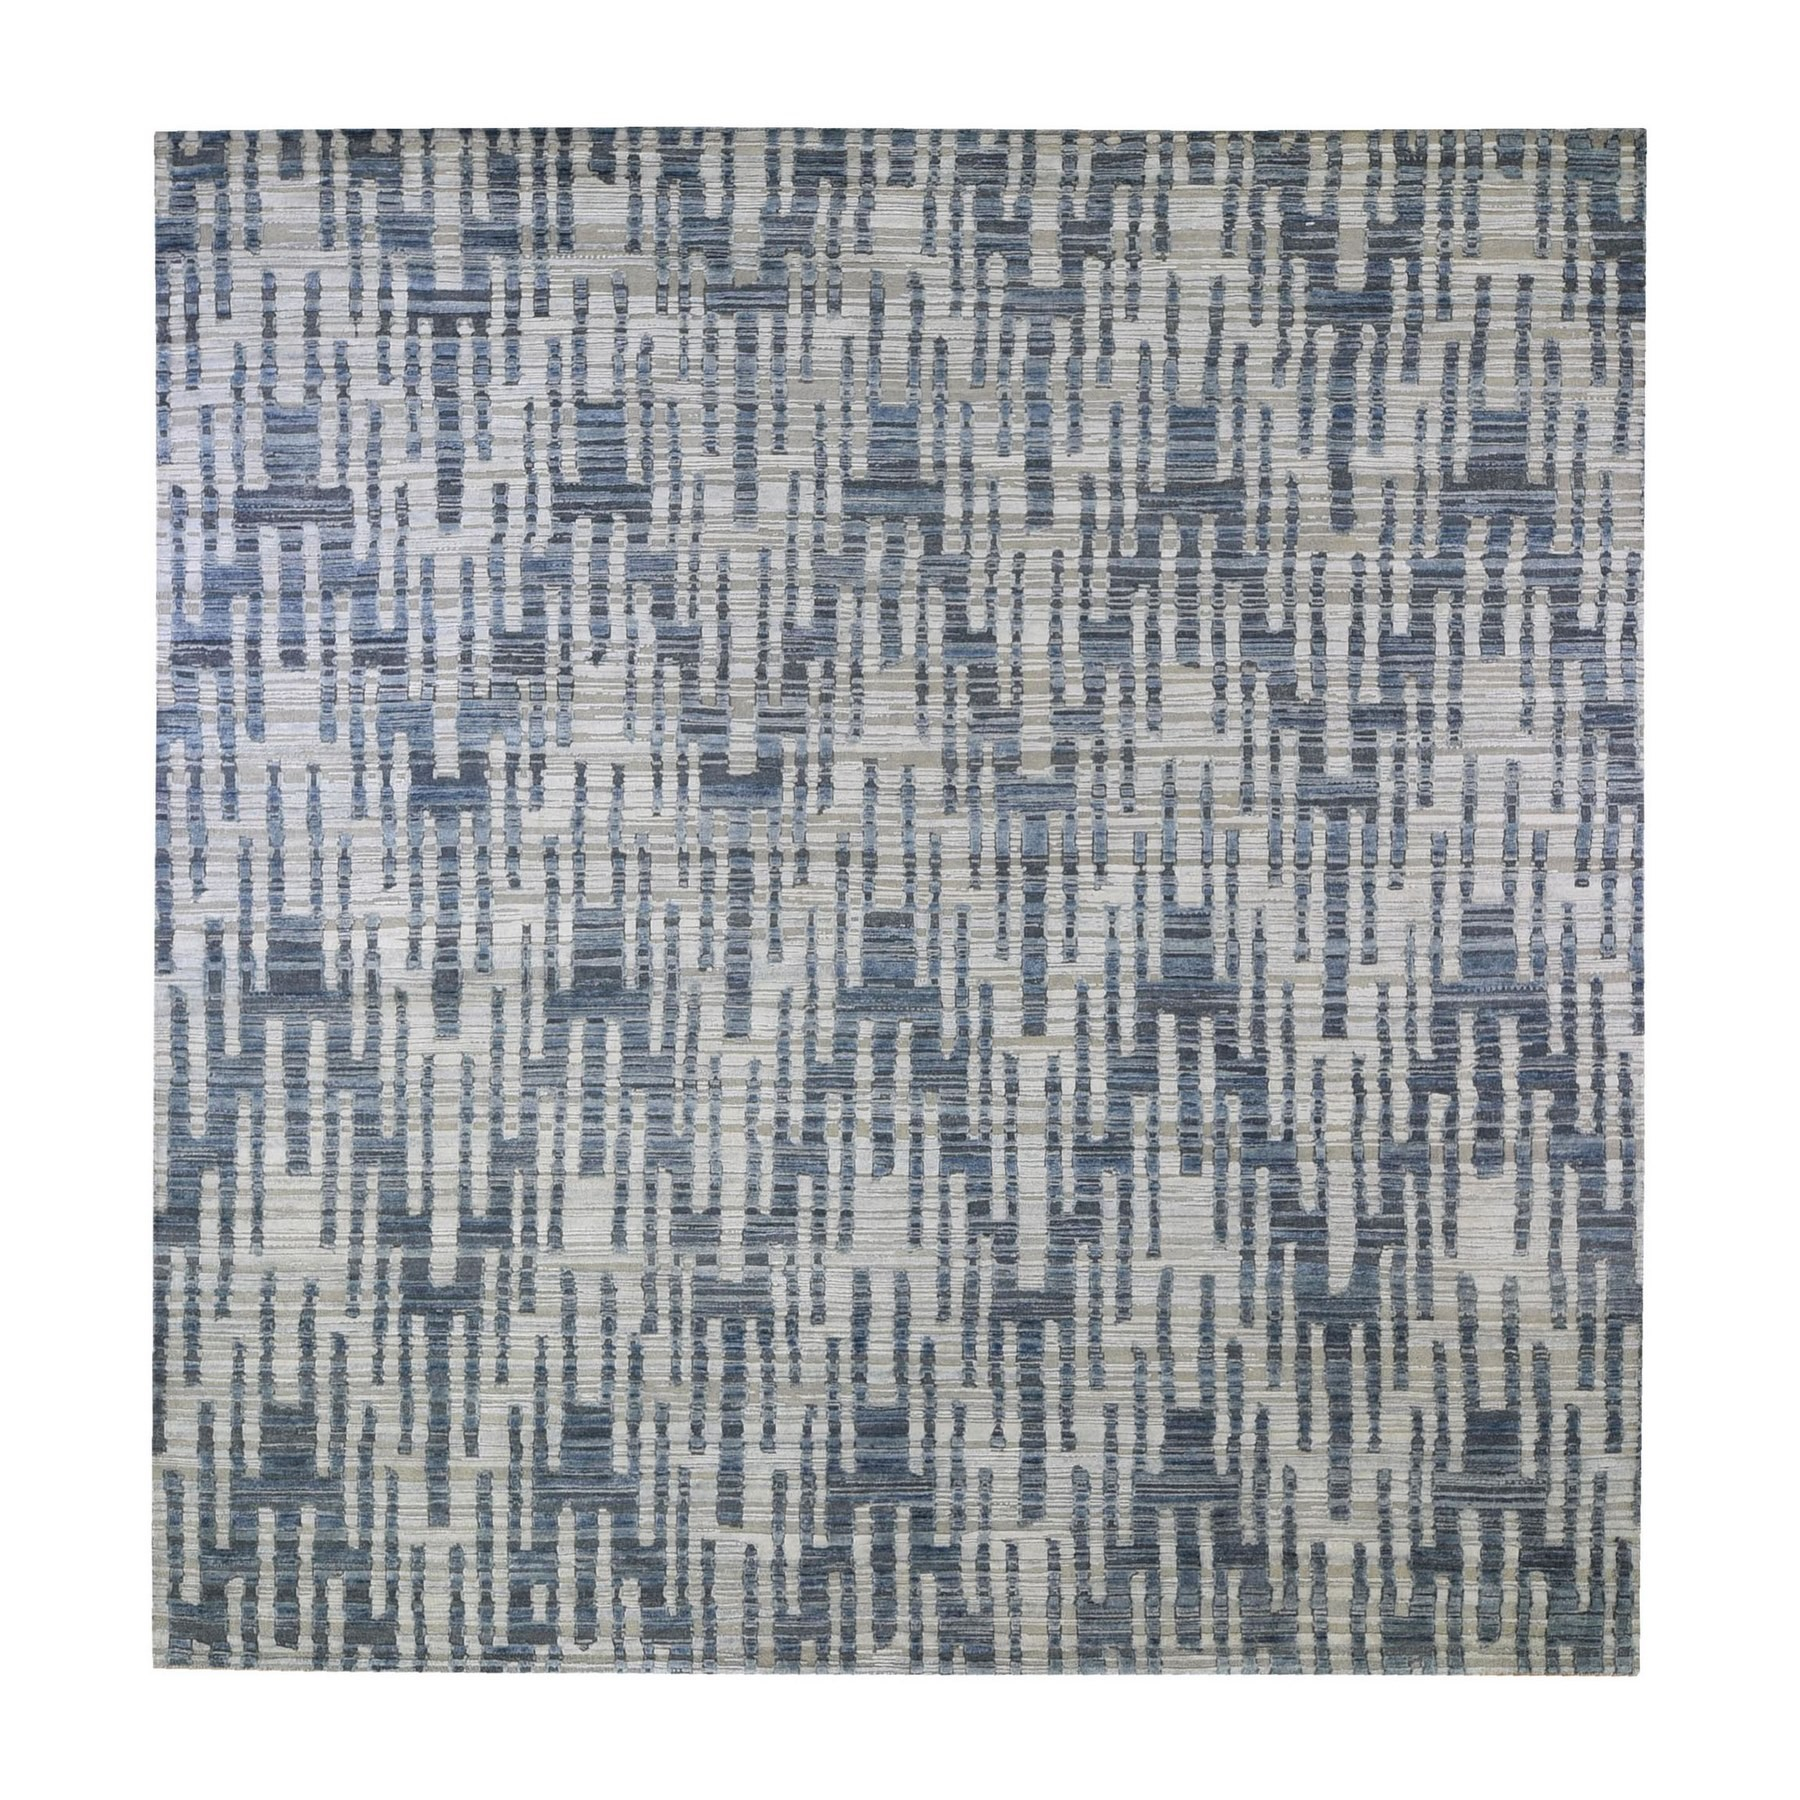 Modern & Contemporary Rugs LUV597600